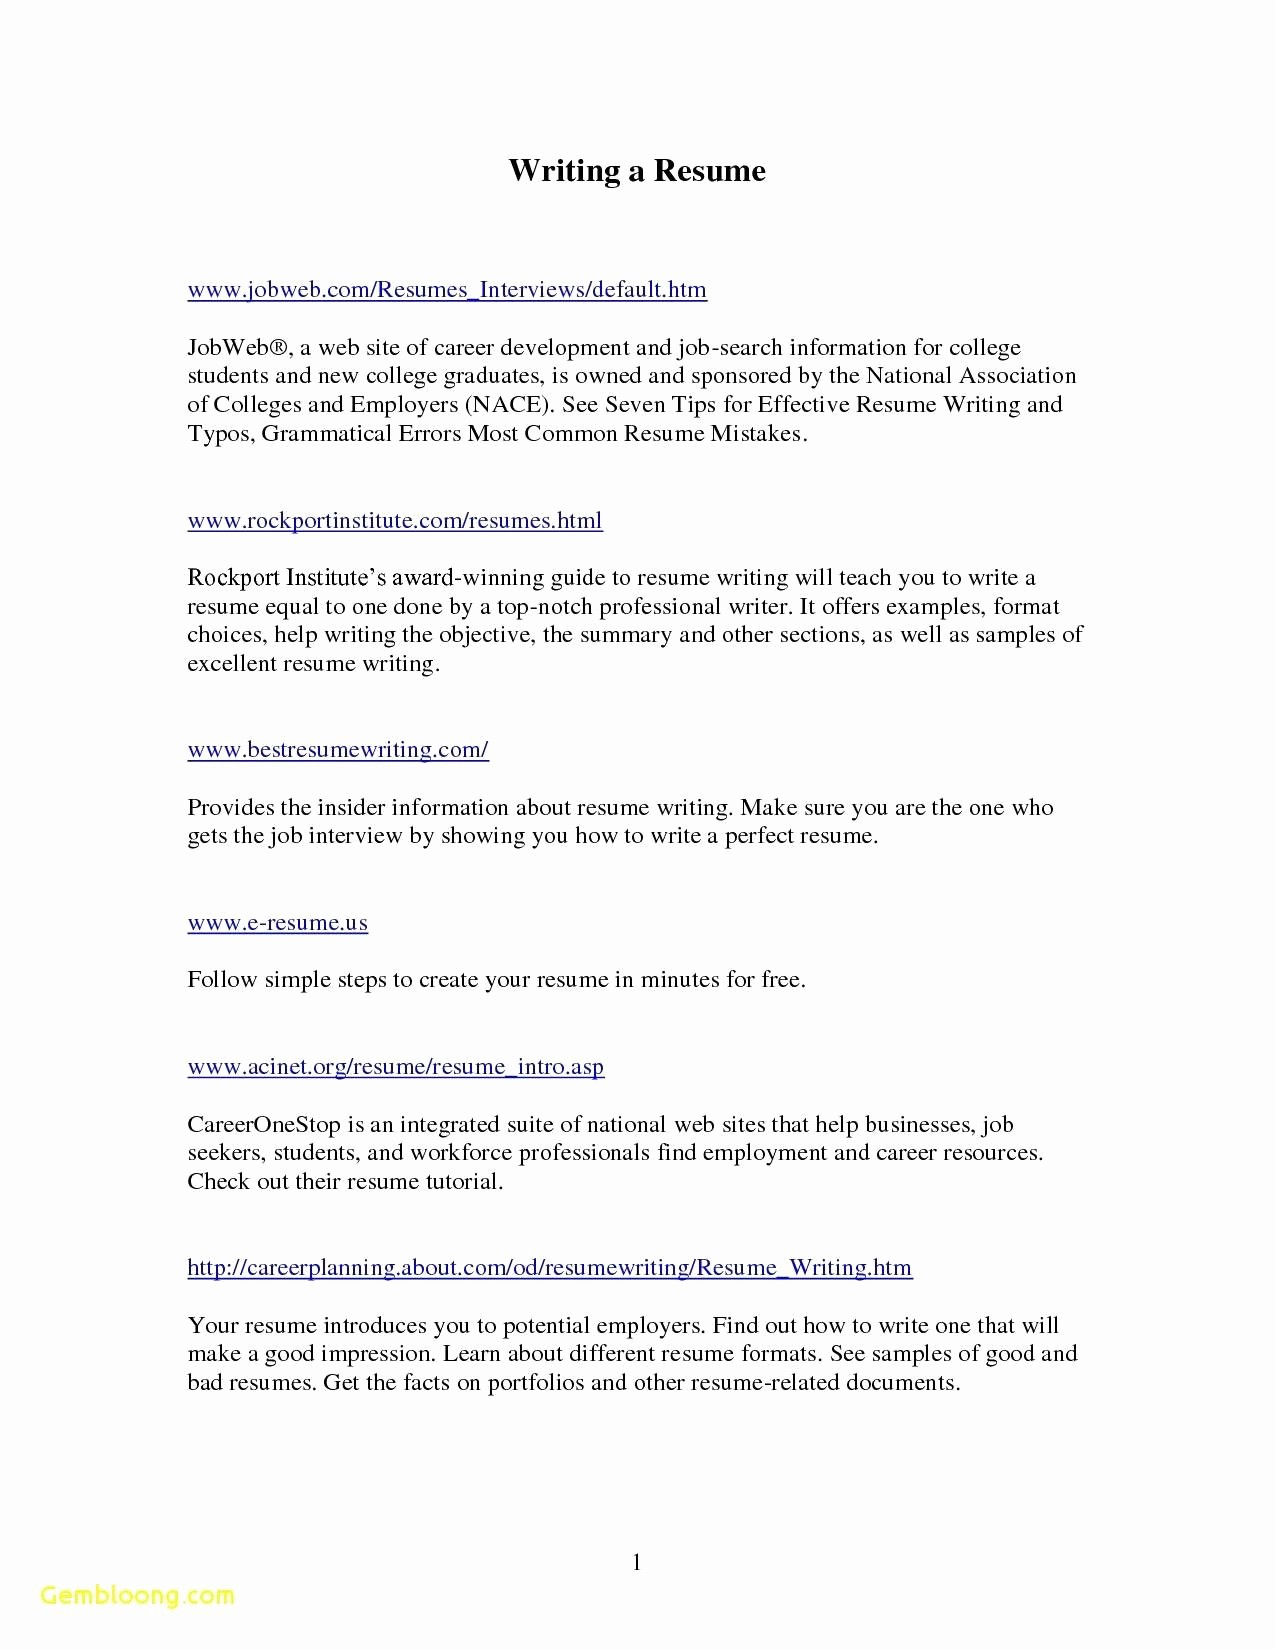 Resume for Police Officer with No Experience - Police Ficer Resume Cover Letter New Cover Letters Police Ficer No